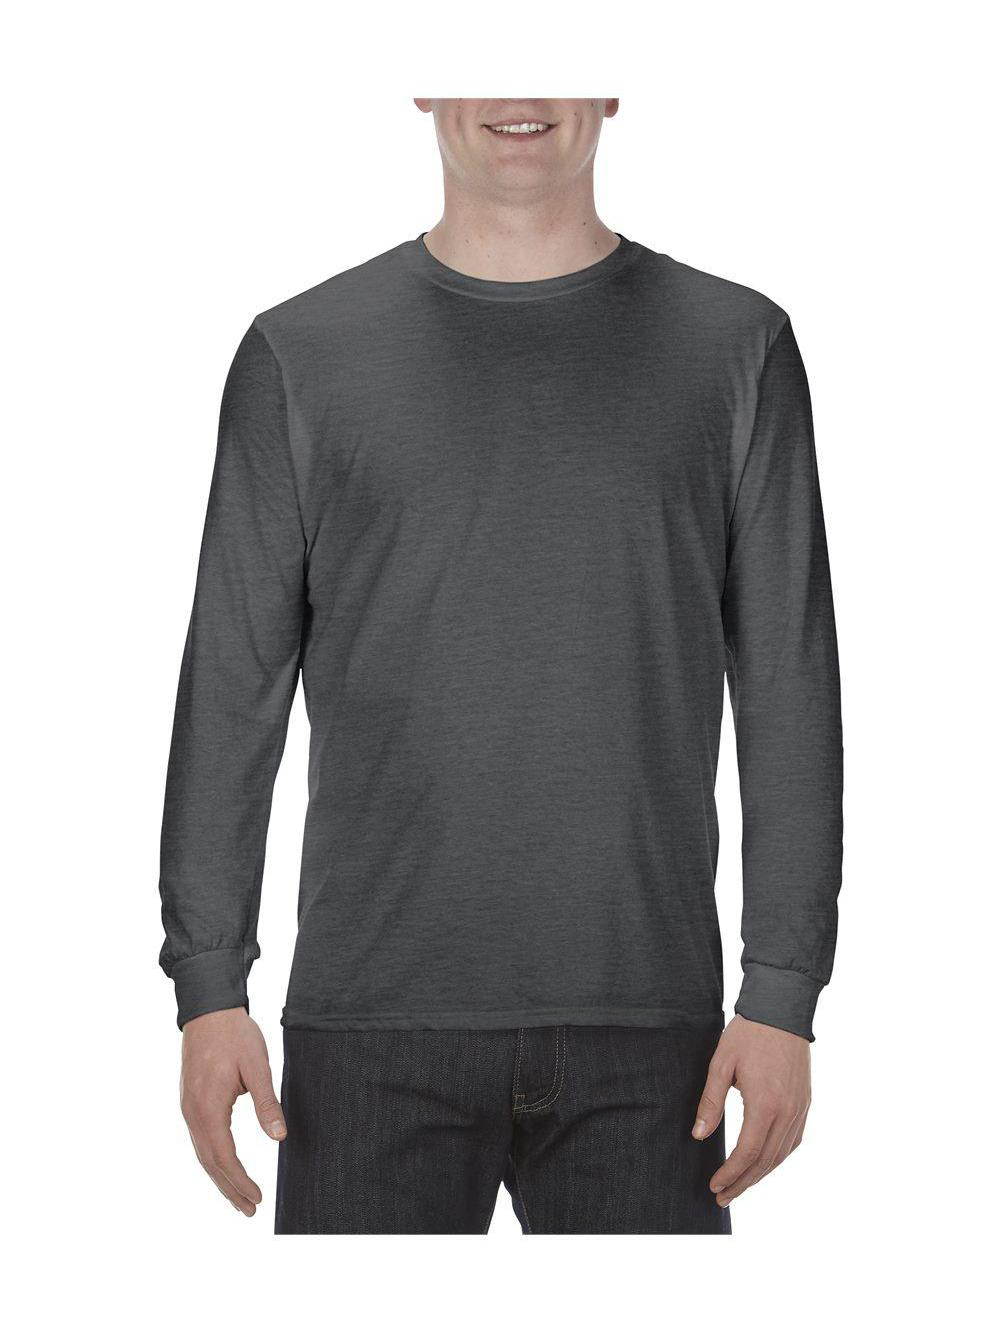 ALSTYLE-Ultimate-Long-Sleeve-T-Shirt-5304 thumbnail 10